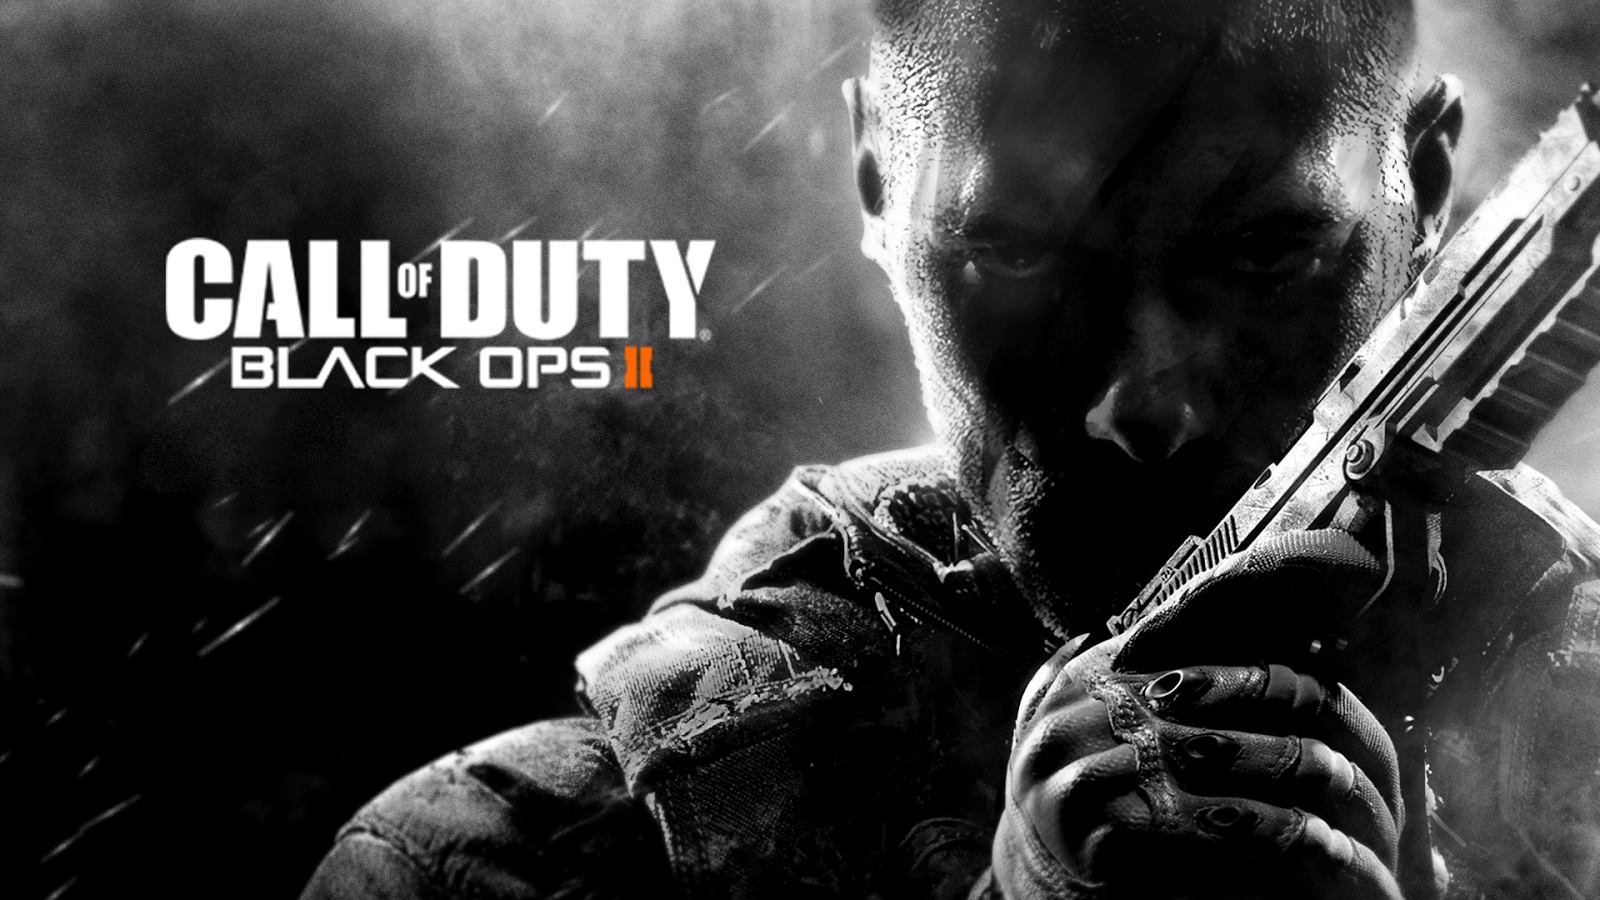 High Quality Image of Call Of Duty Black Ops 2 » 1600x900